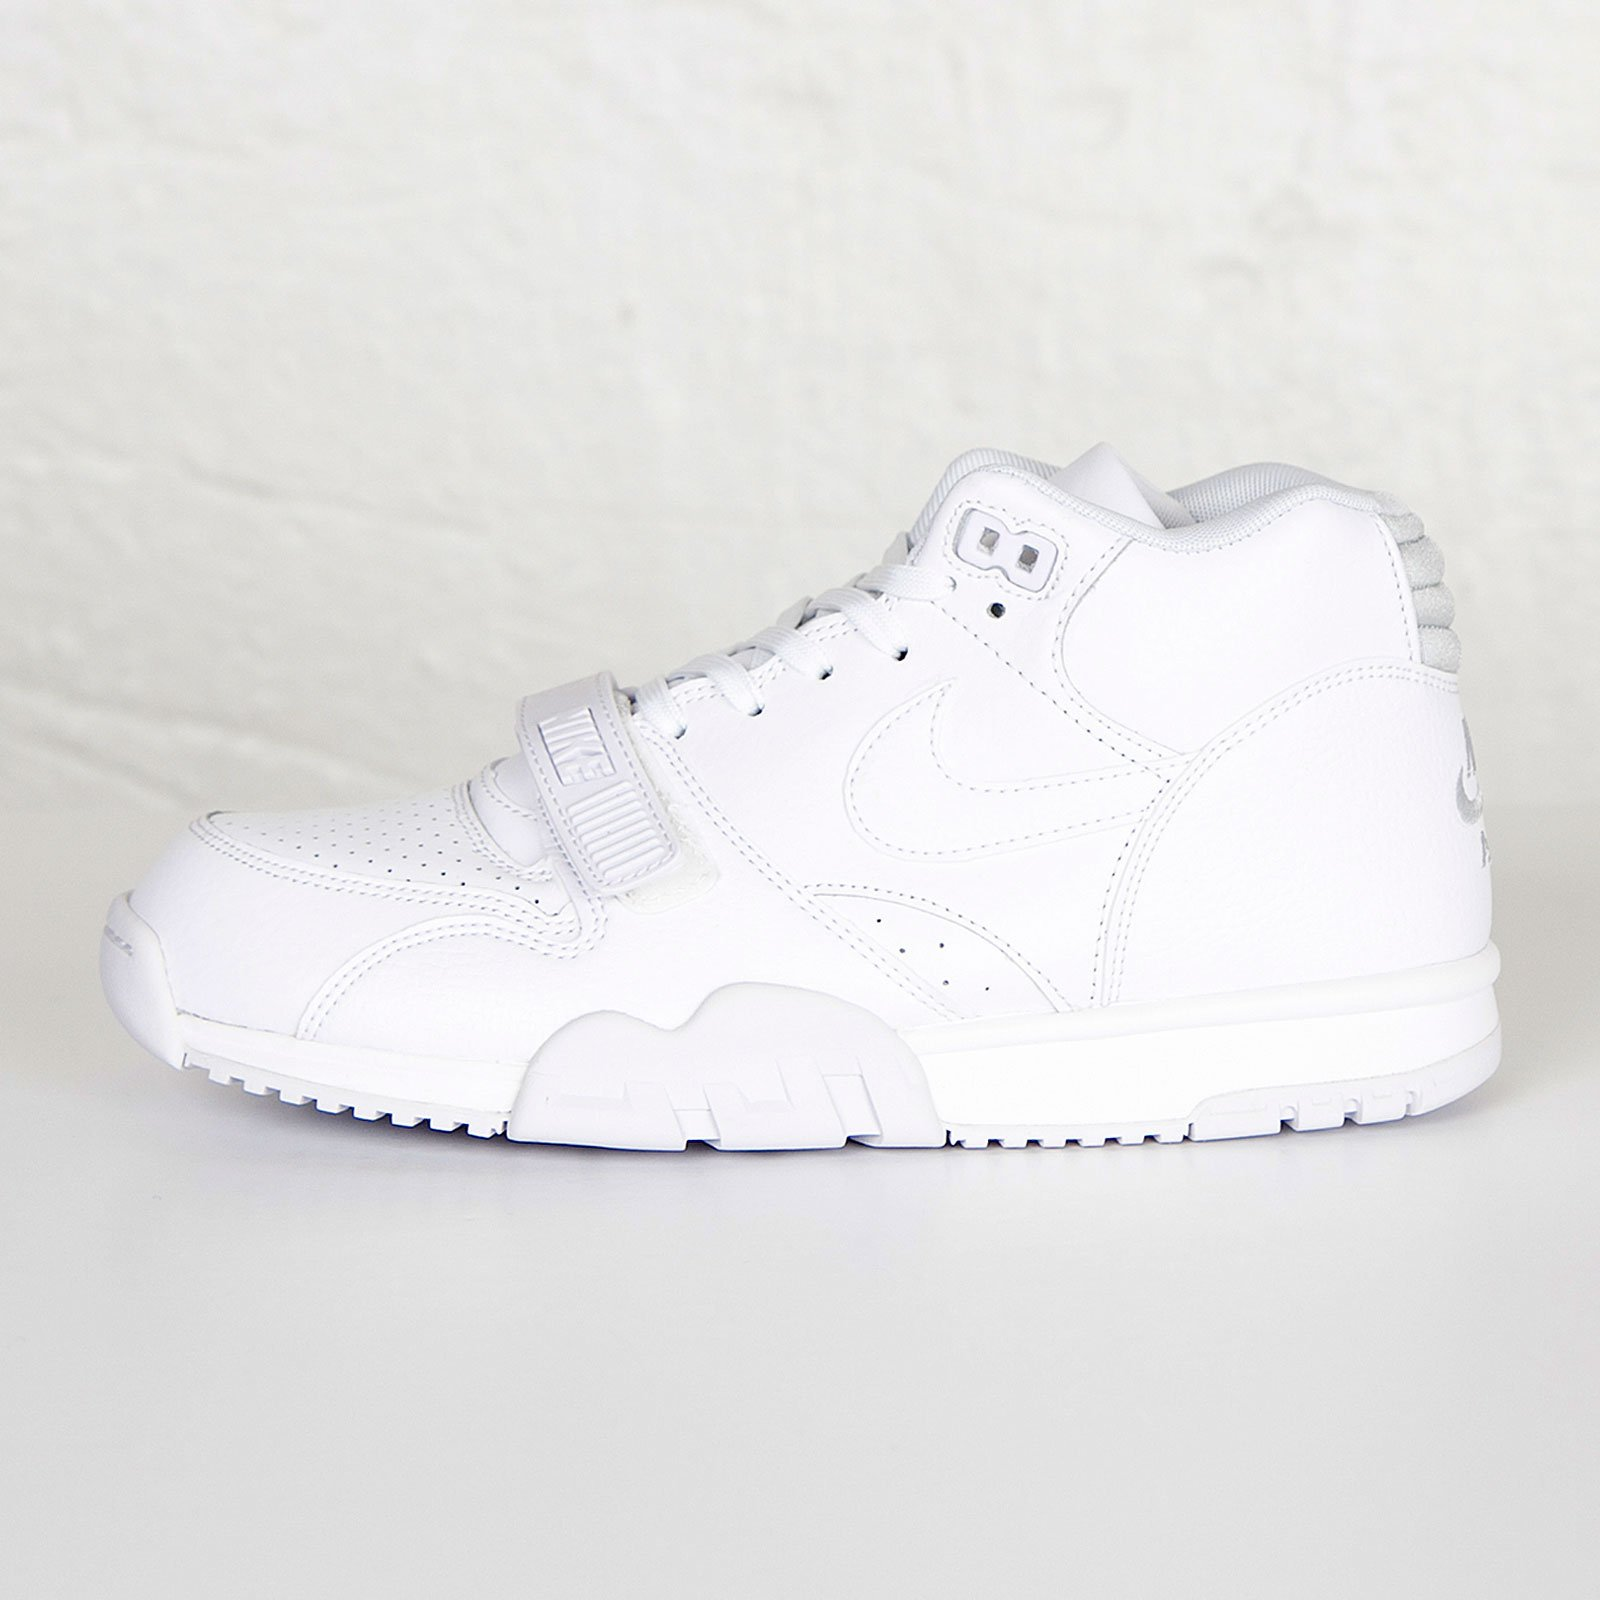 reputable site 385a2 80cac Nike Air Trainer 1 Mid - 6. Stäng